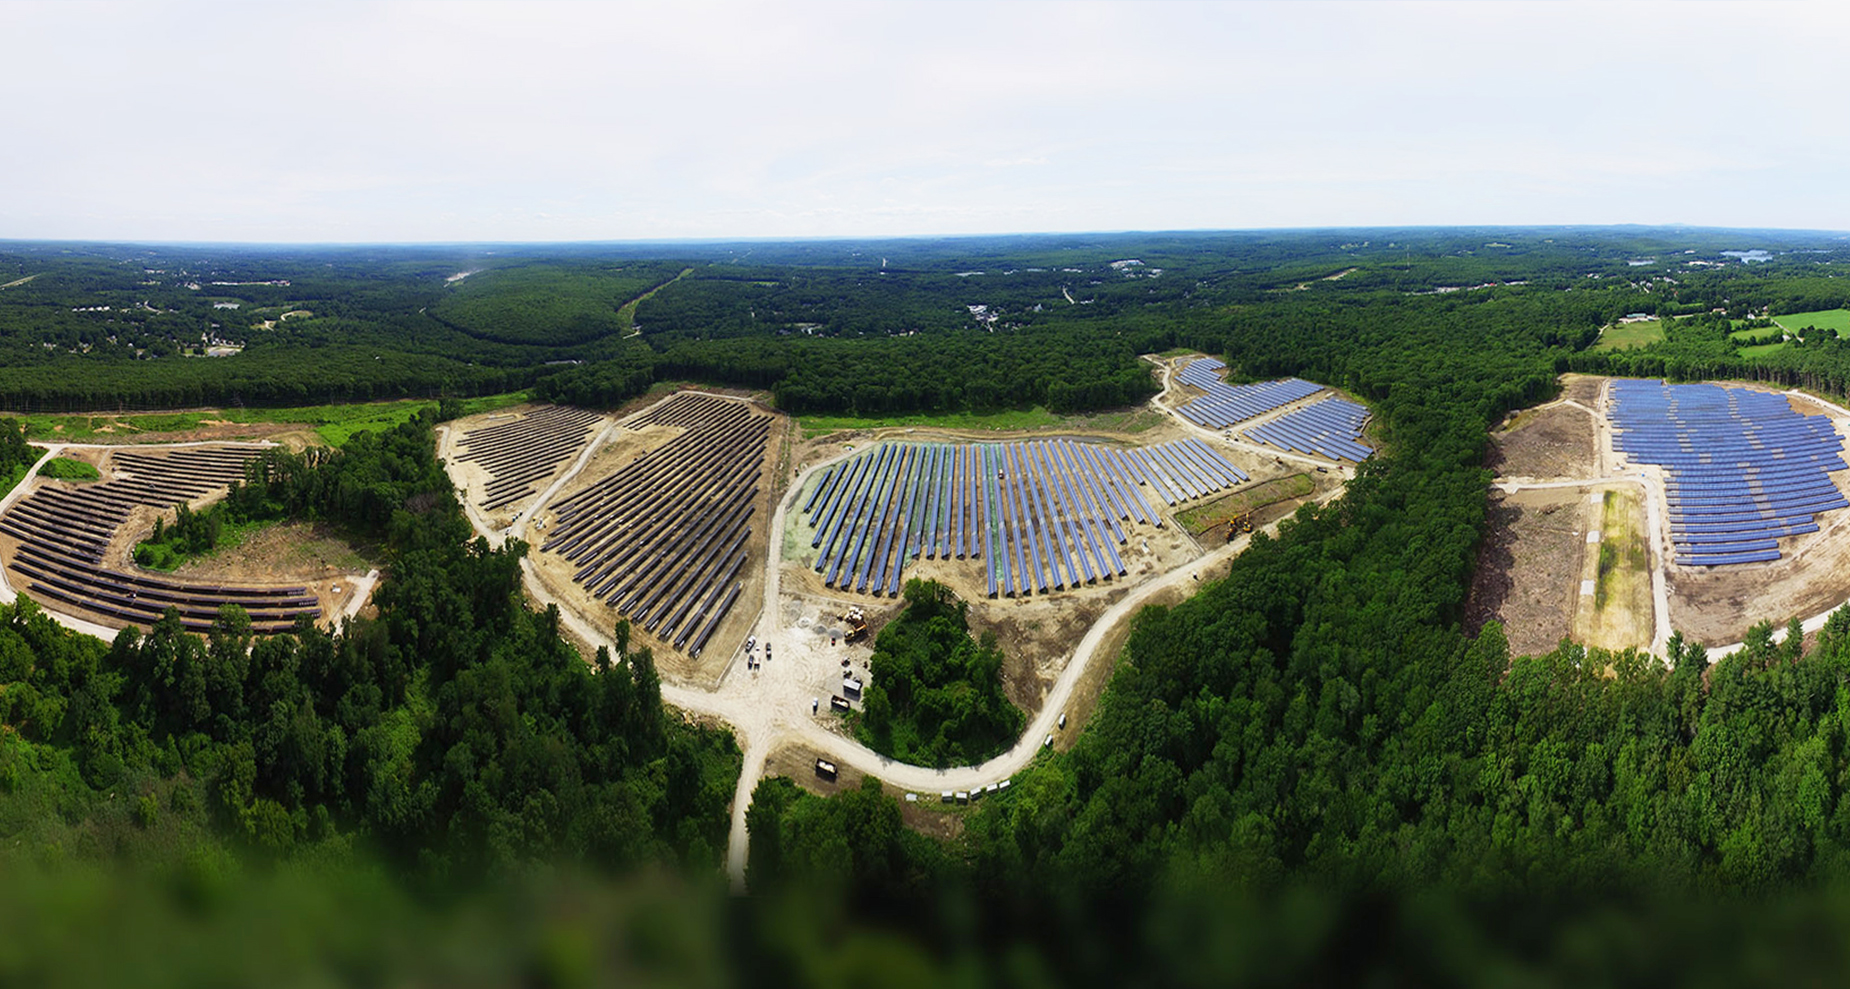 Conti Solar, National EPC Services Firm, Closes 2018 With 650 MW of Solar Projects Completed or Underway